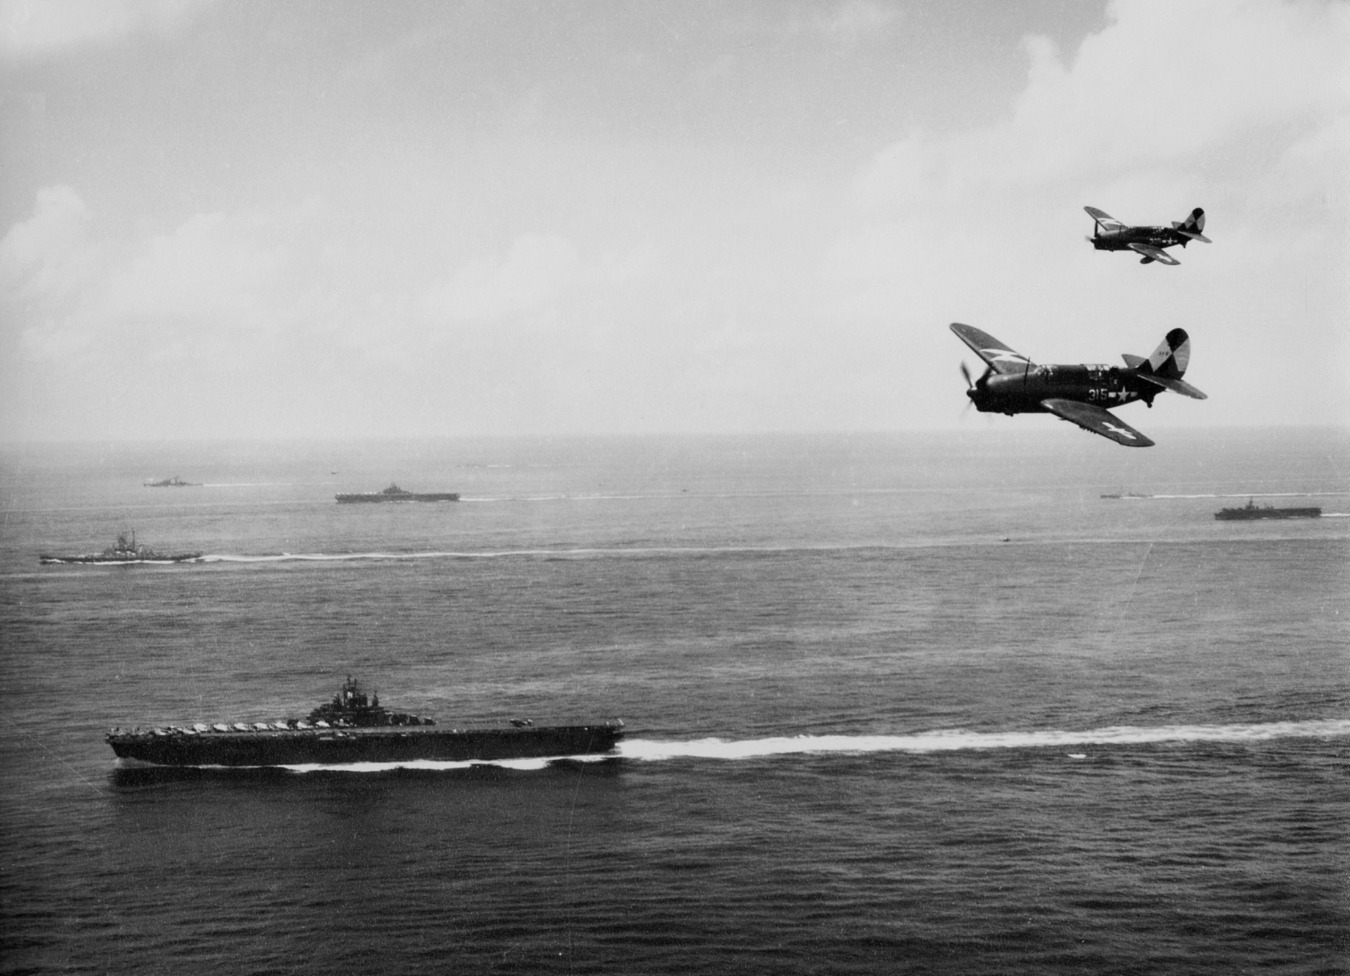 This Fleet Of American Aircraft Carriers Took on a Typhoon (Bad Idea)